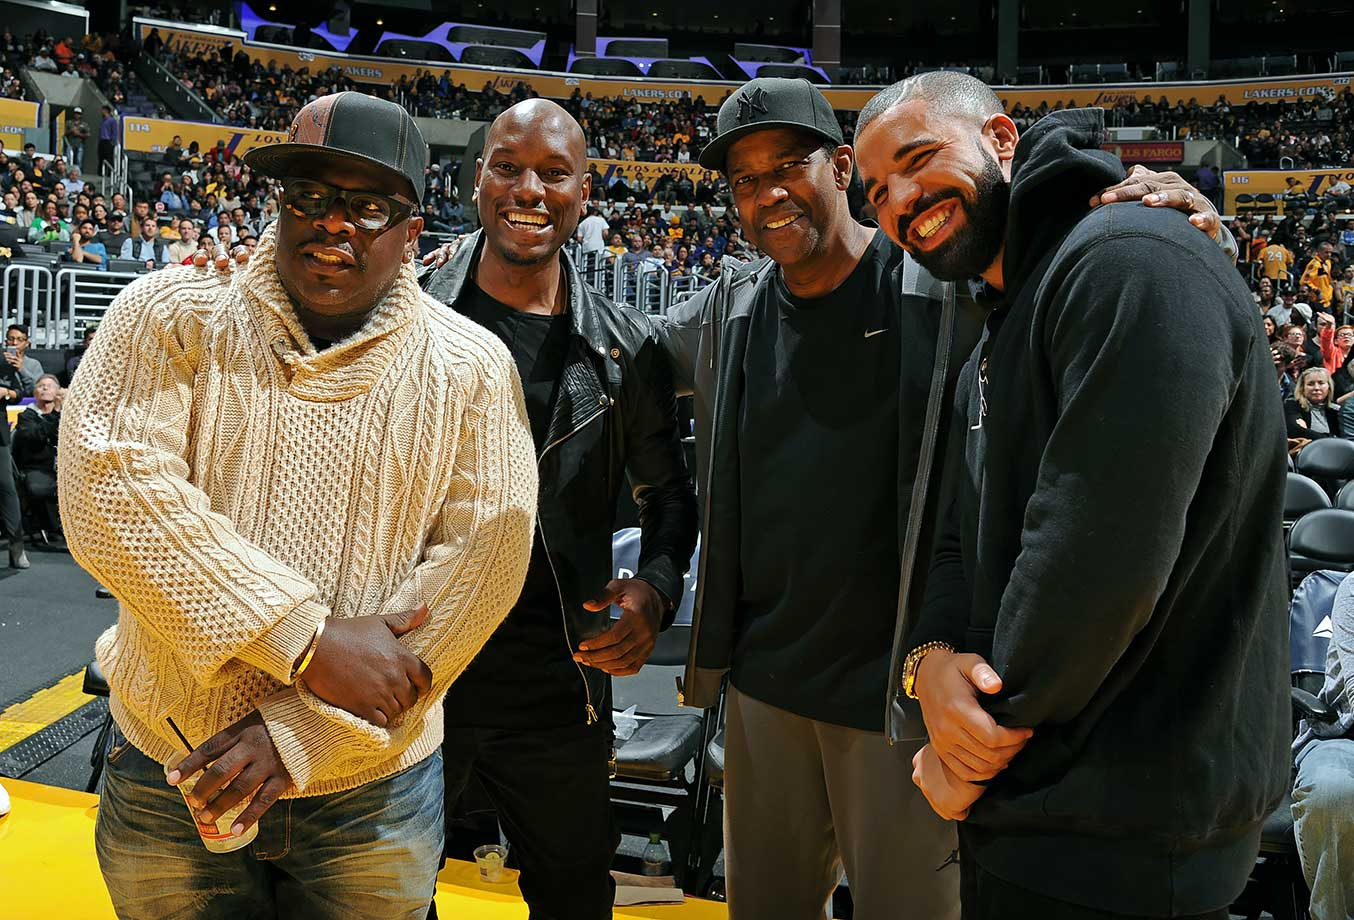 Dec. 23, 2015 — Lakers vs. Thunder at Staples Center in Los Angeles